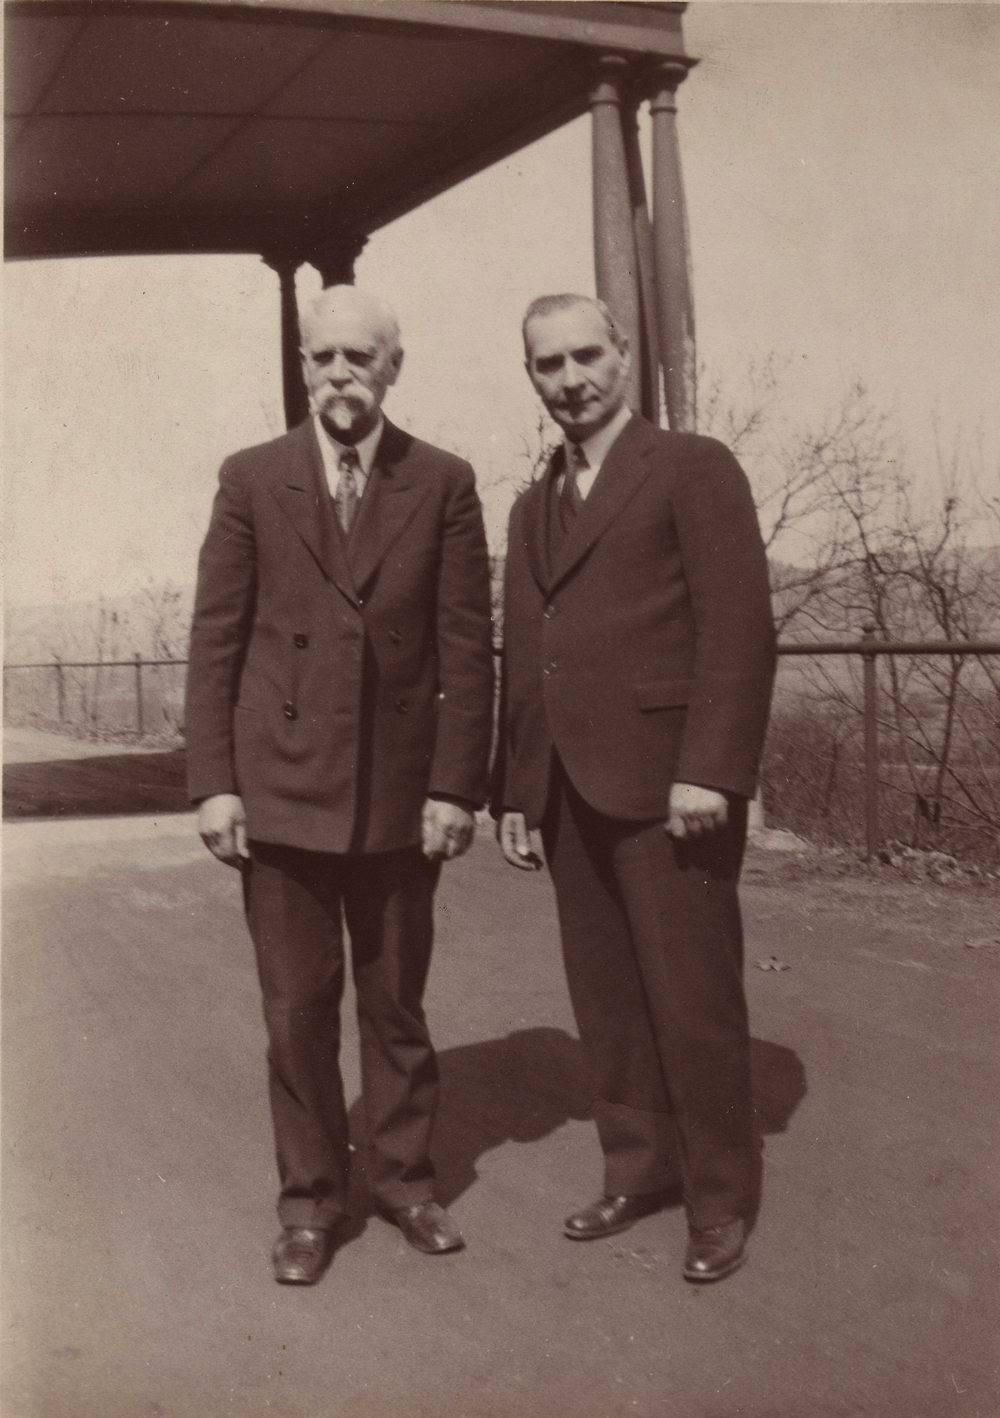 SD Kinne & J. Bliss teachers at Hornell.jpg